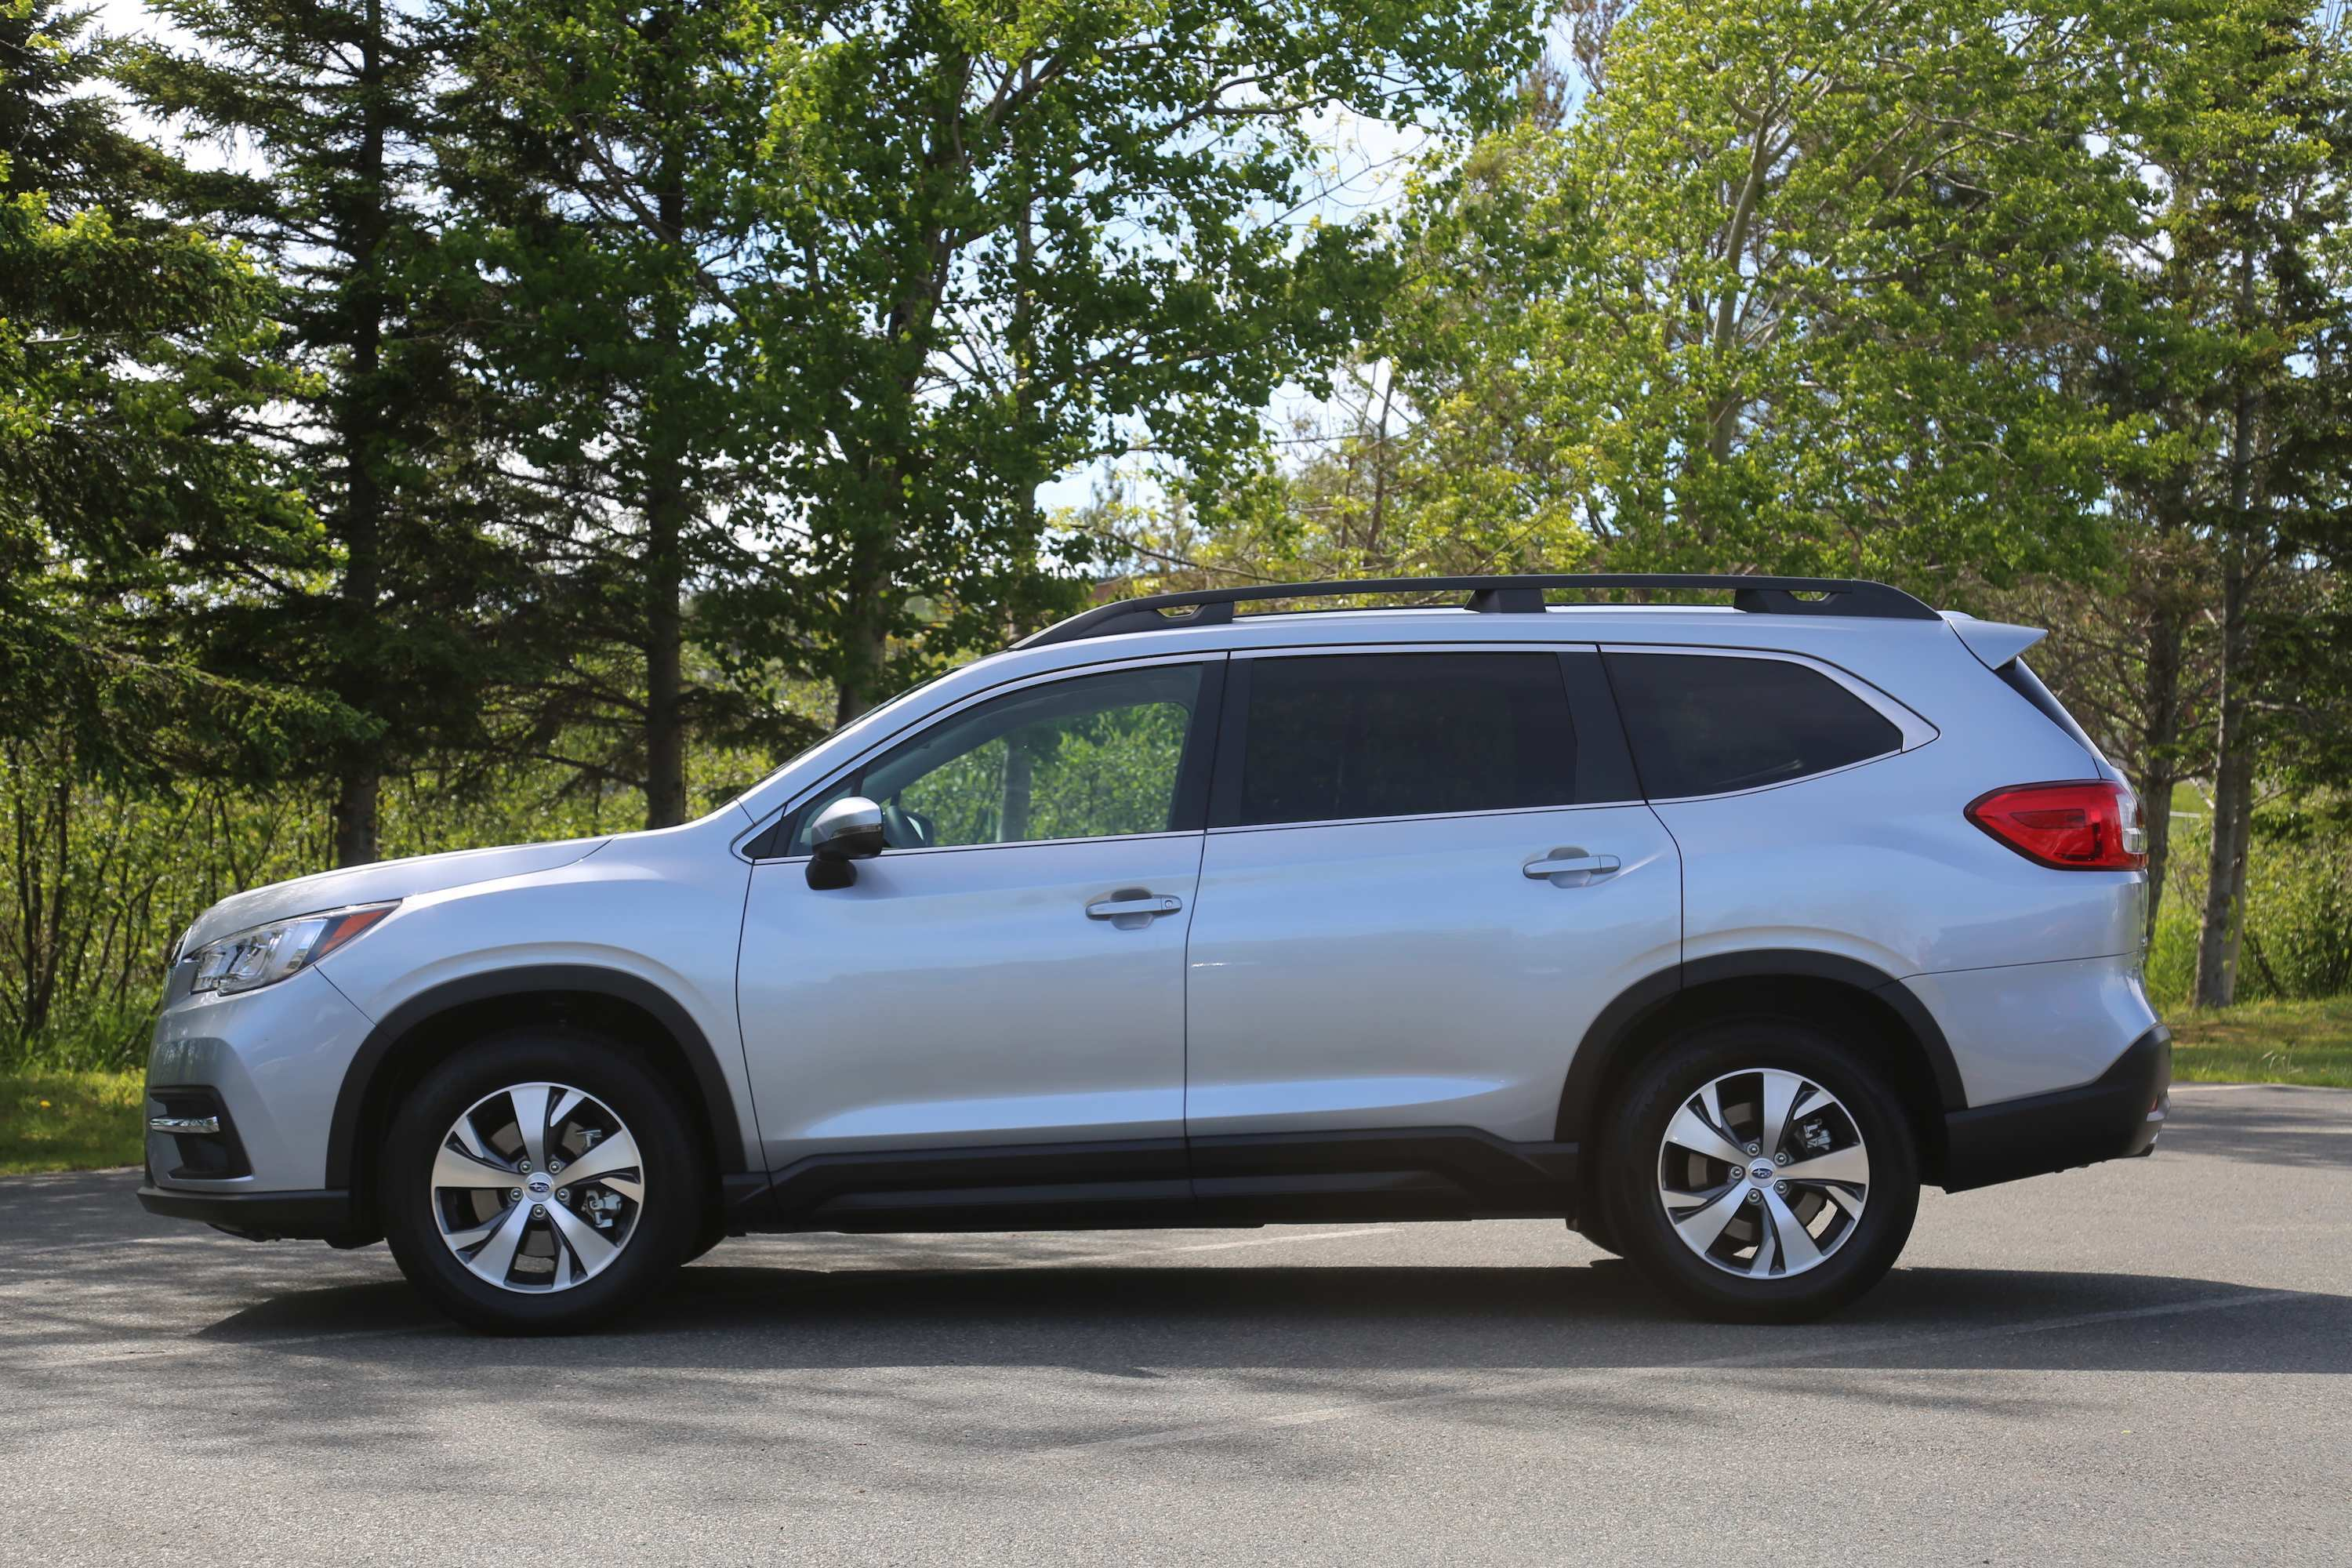 76 The Best 2019 Subaru Ascent Mpg First Drive